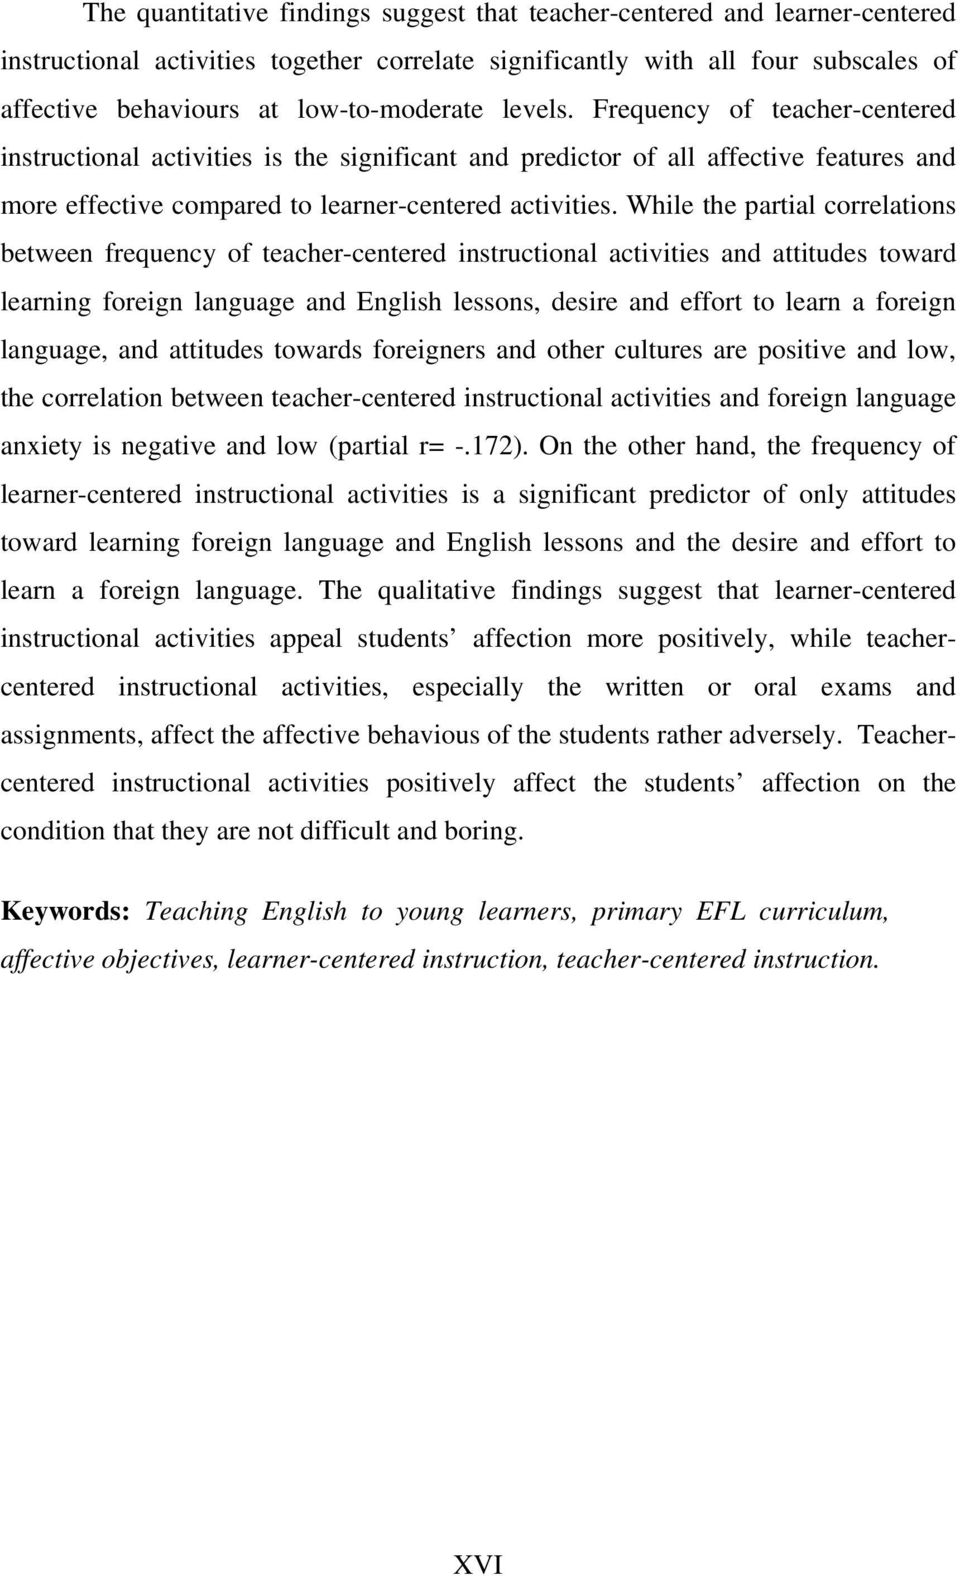 While the partial correlations between frequency of teacher-centered instructional activities and attitudes toward learning foreign language and English lessons, desire and effort to learn a foreign